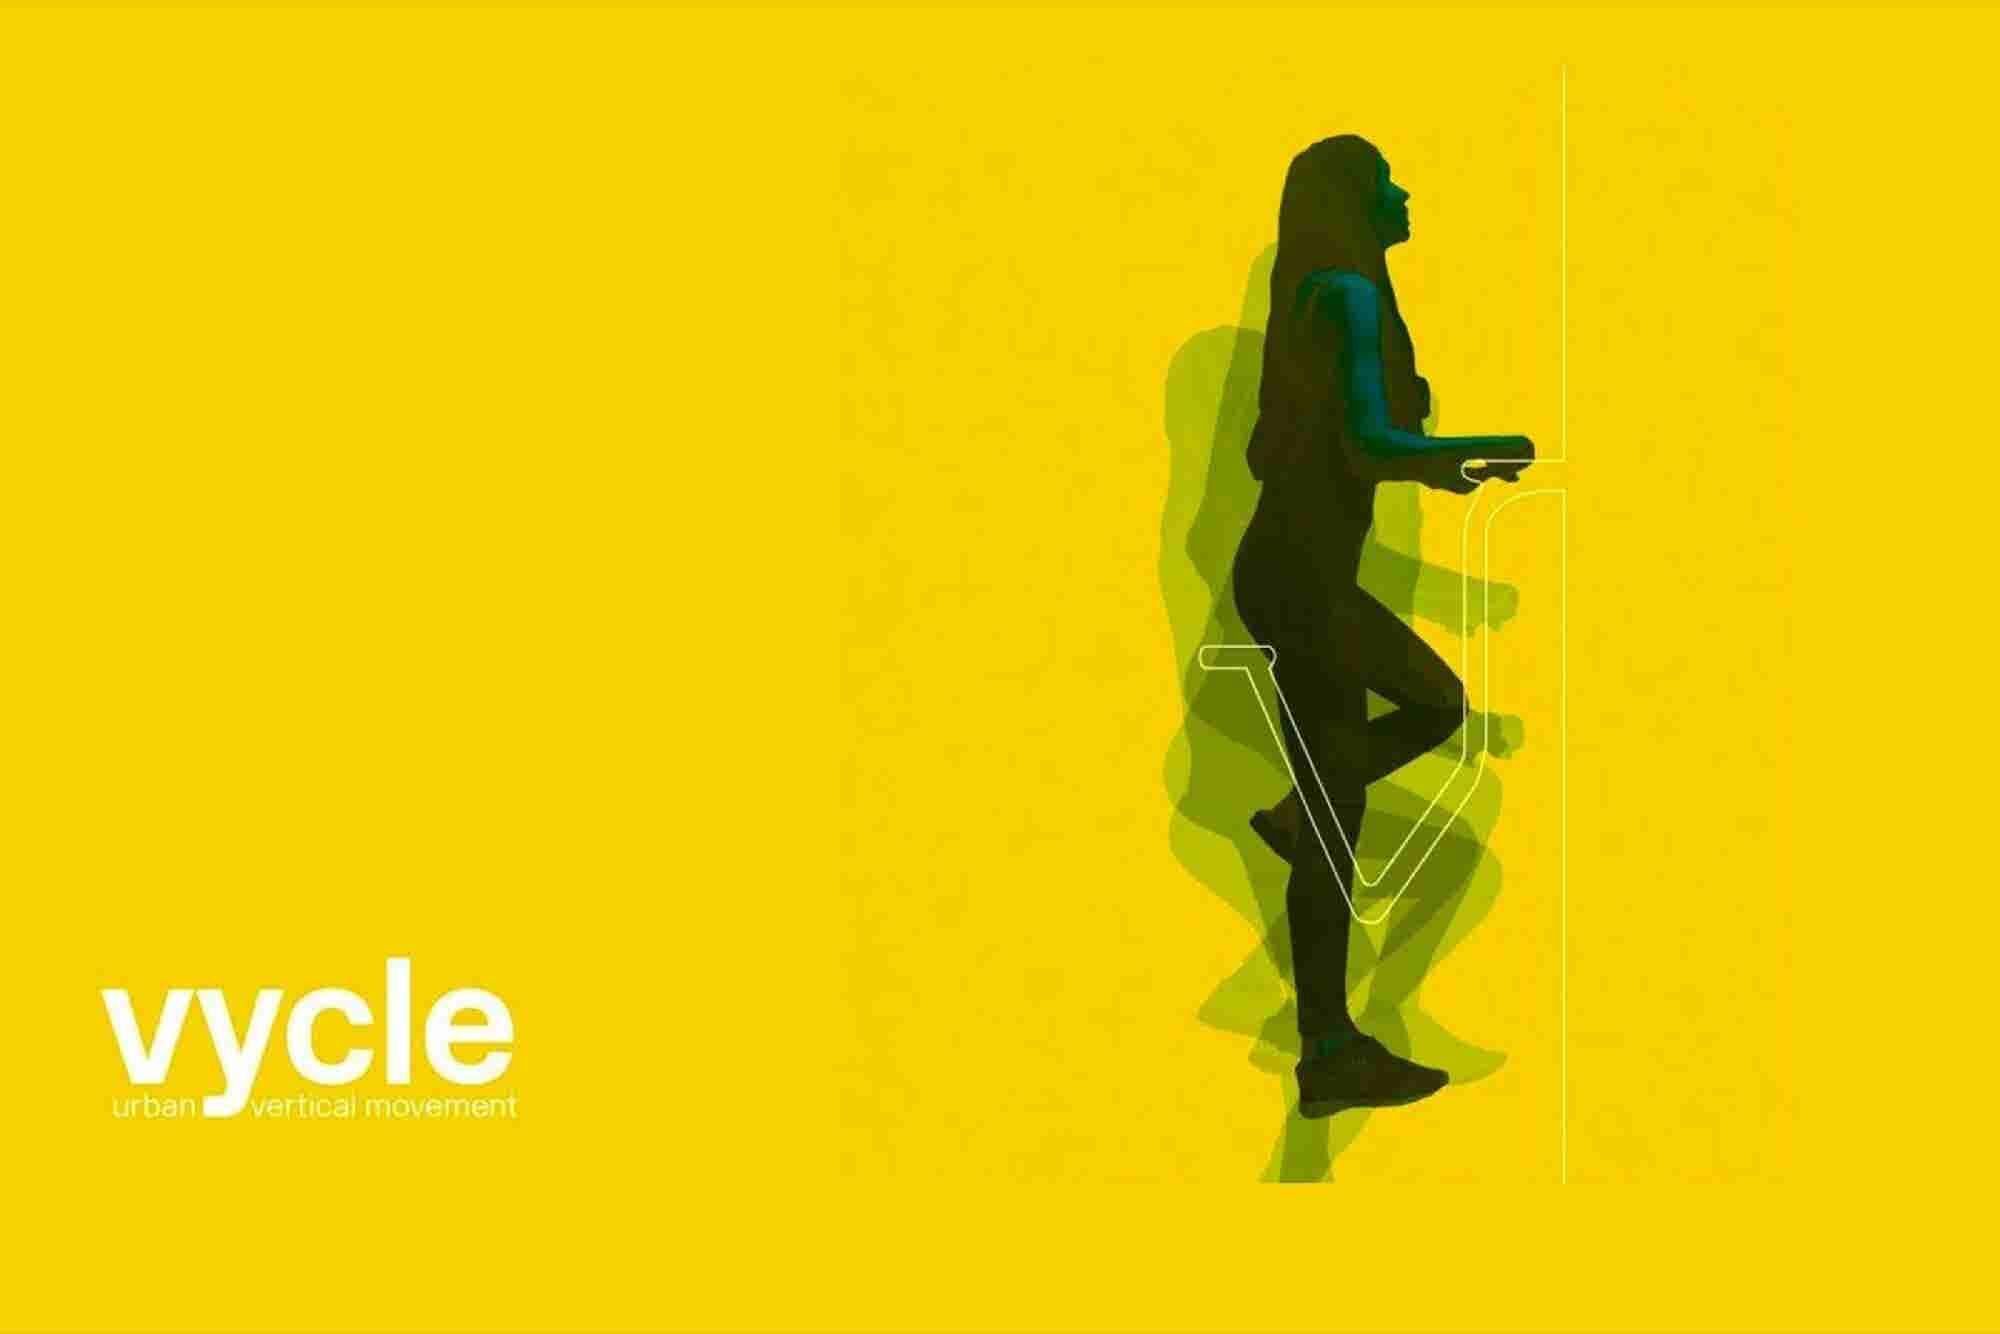 Vycle Replaces Lifts and Stairs With a Vertical Bike